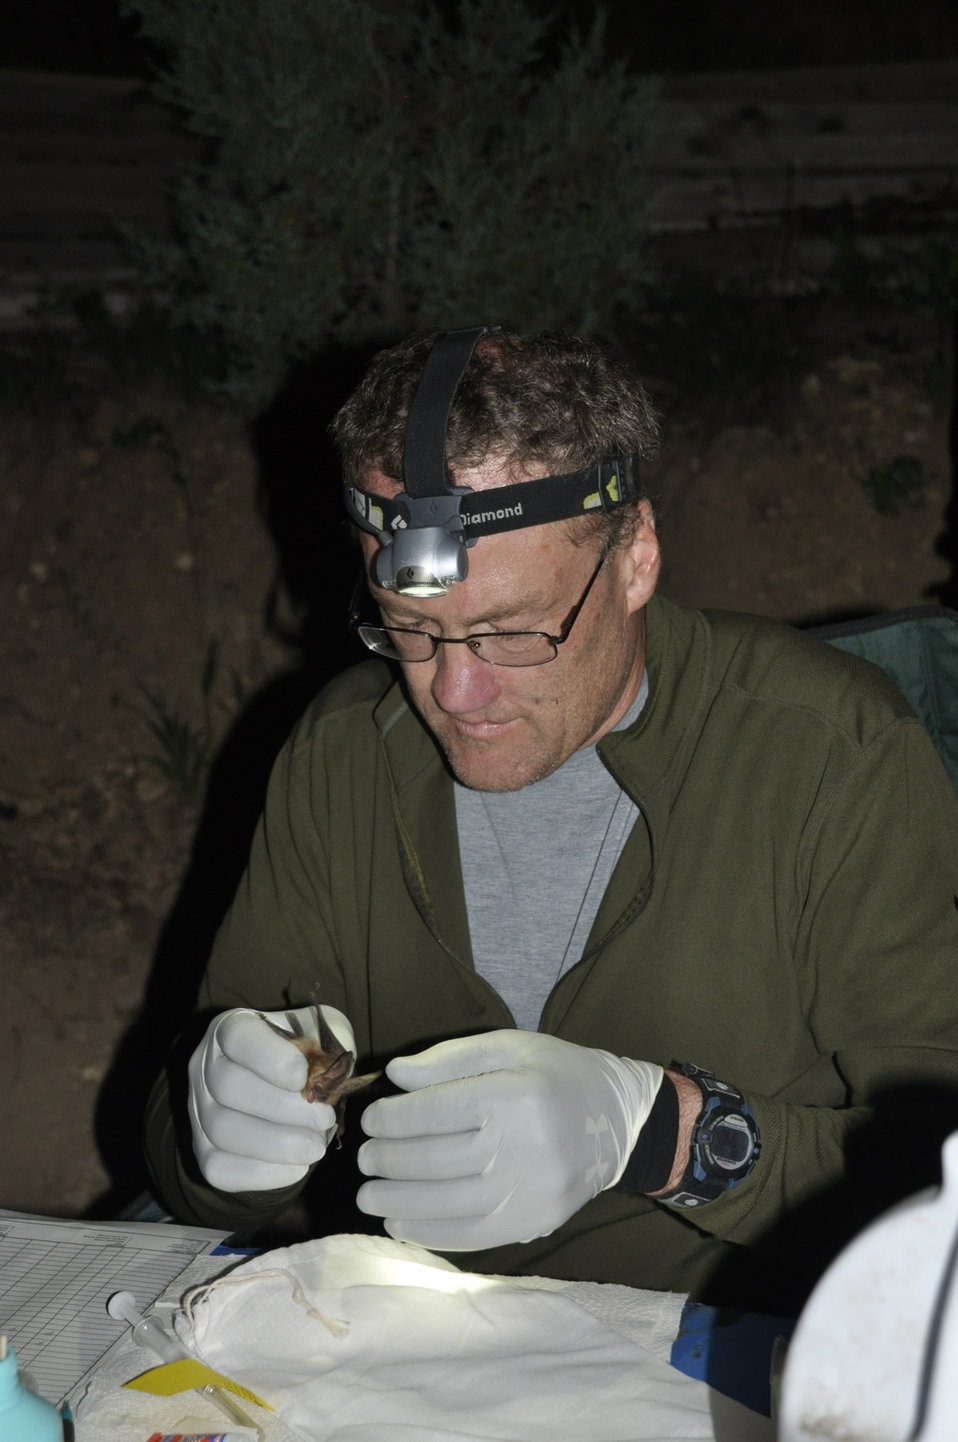 NPS wildlife vet inspects bat